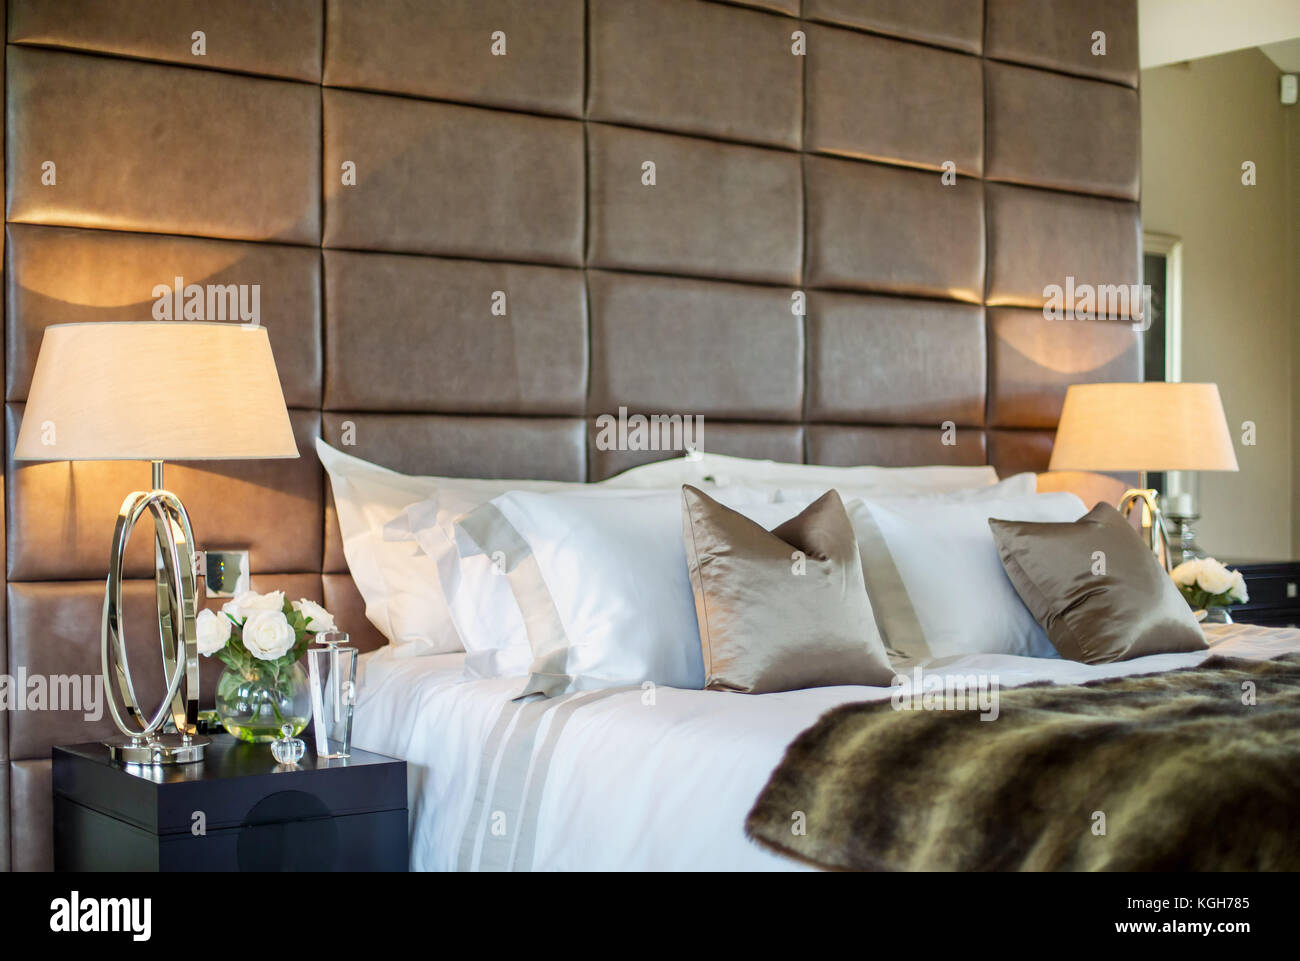 Tight shot of luxury bed in large house - Stock Image